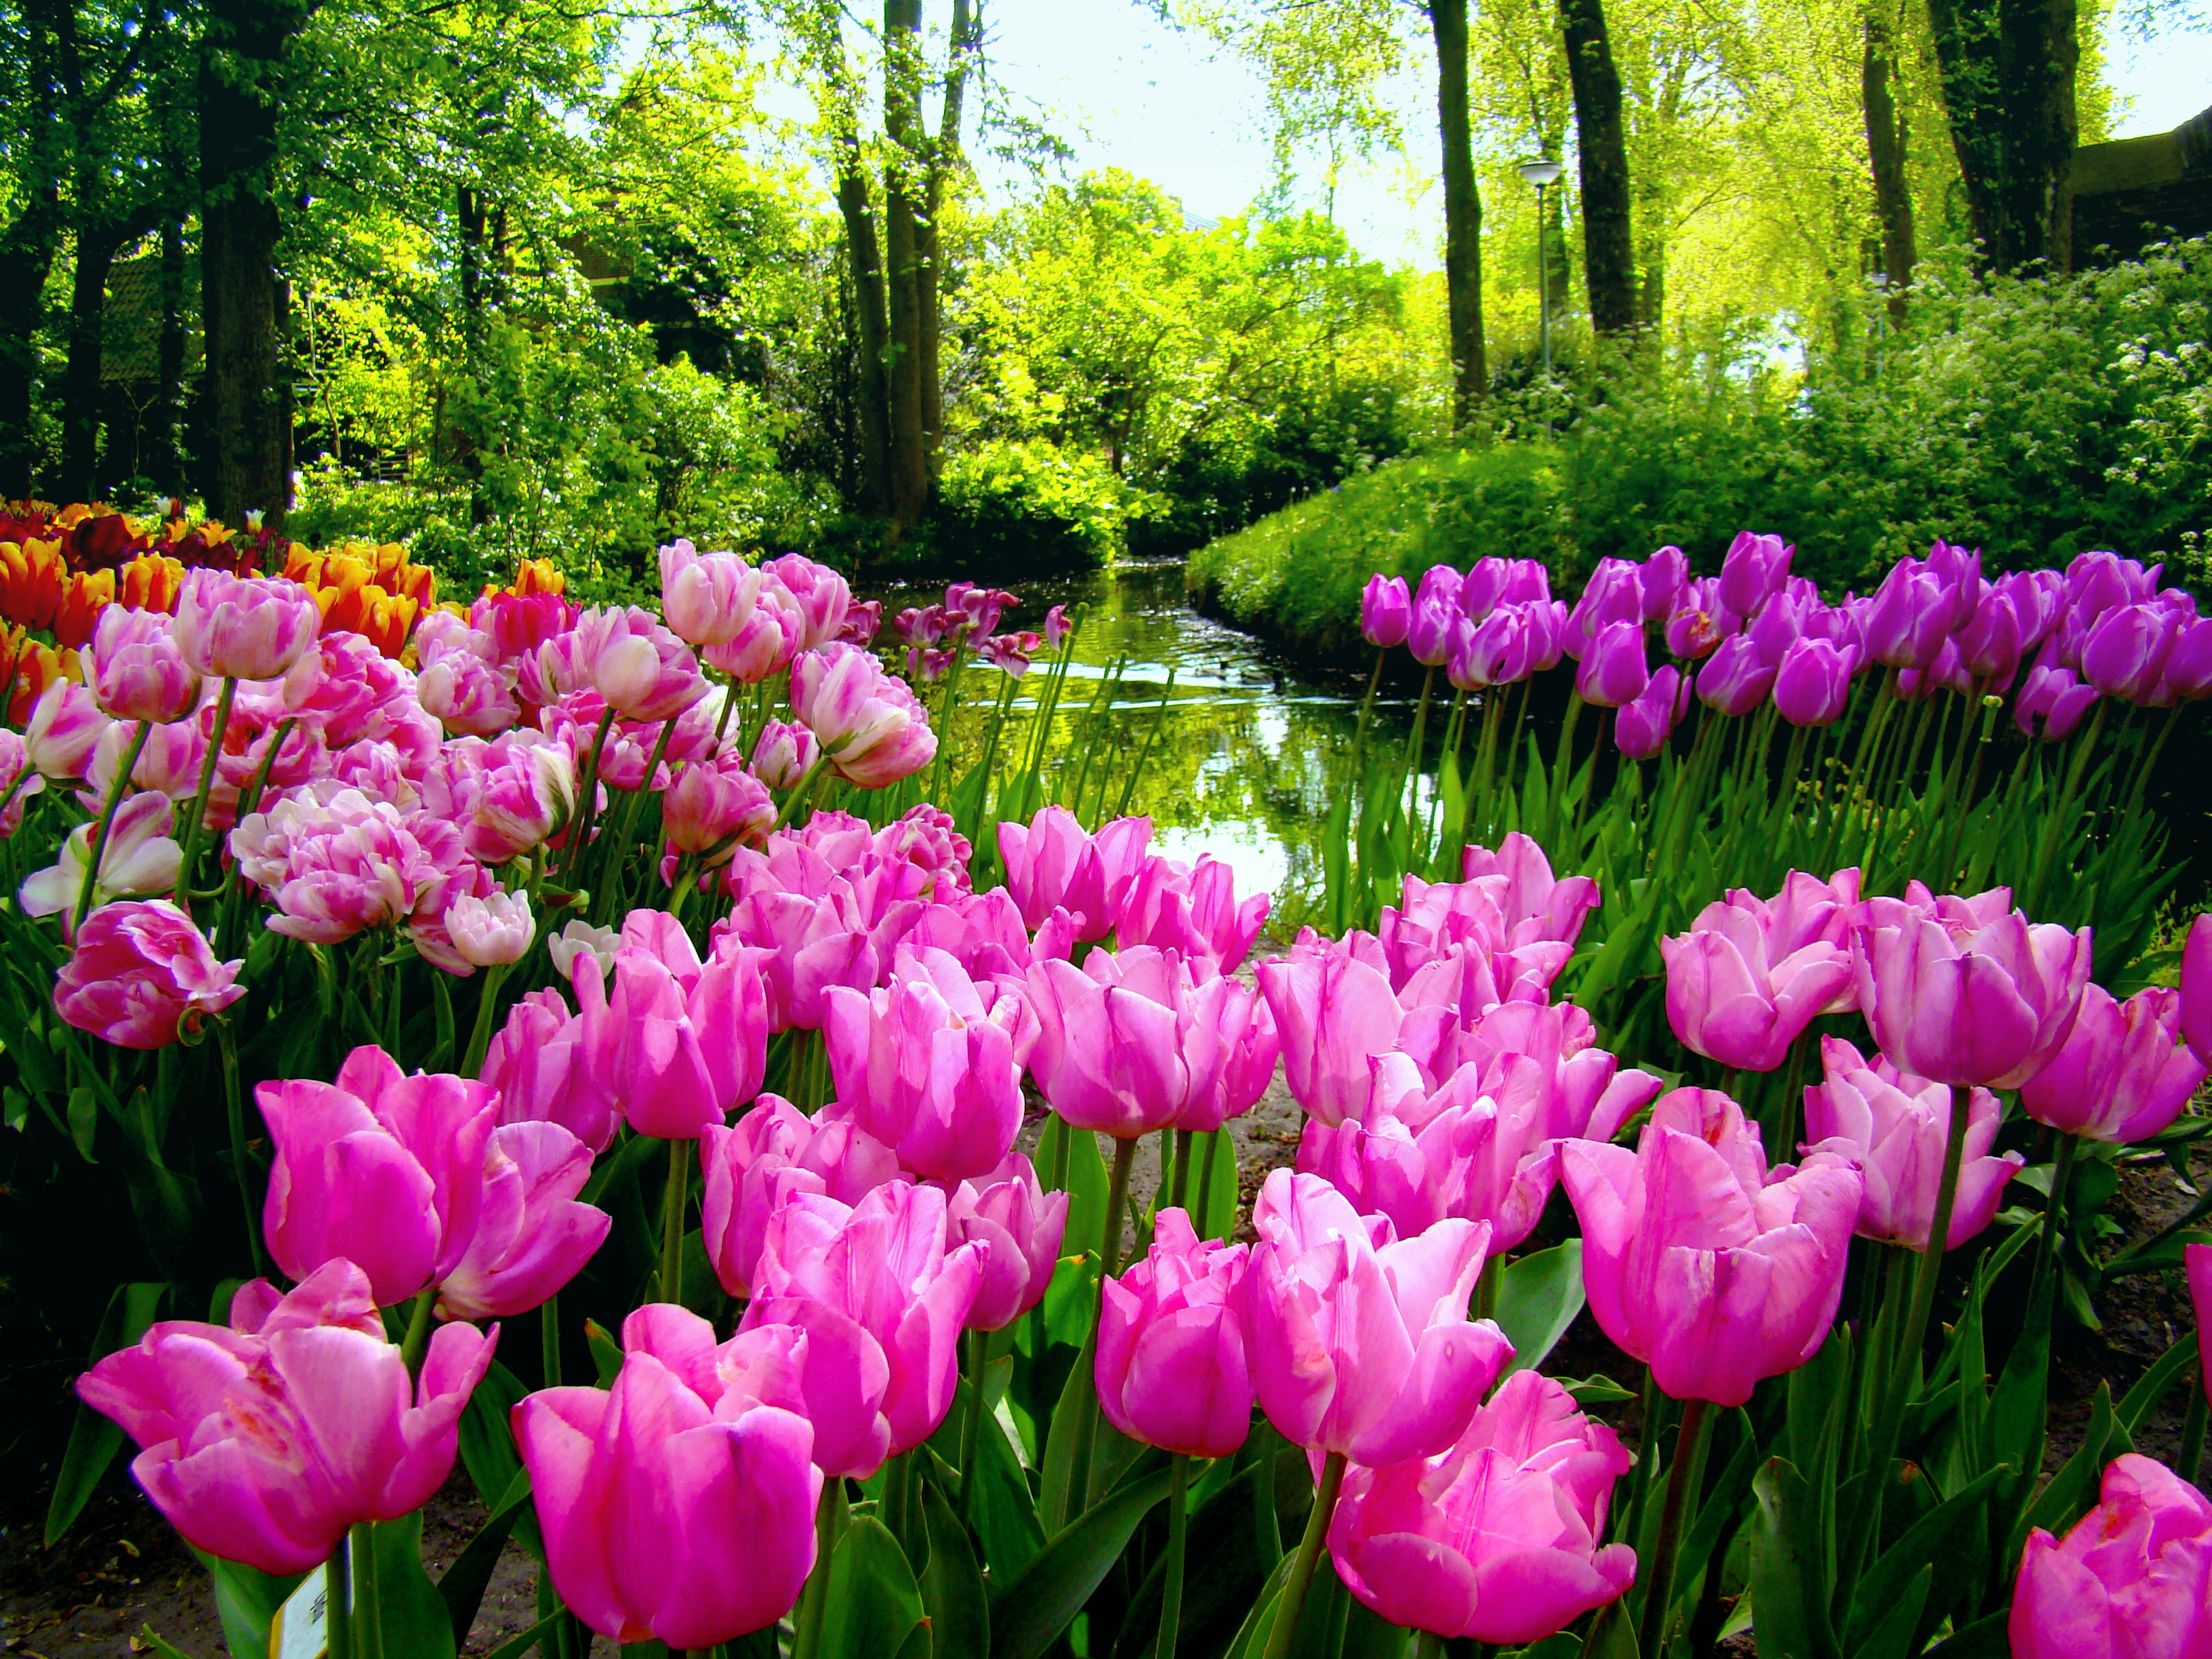 Spring garden wallpaper desktop wallpapersafari - Garden screensavers free ...